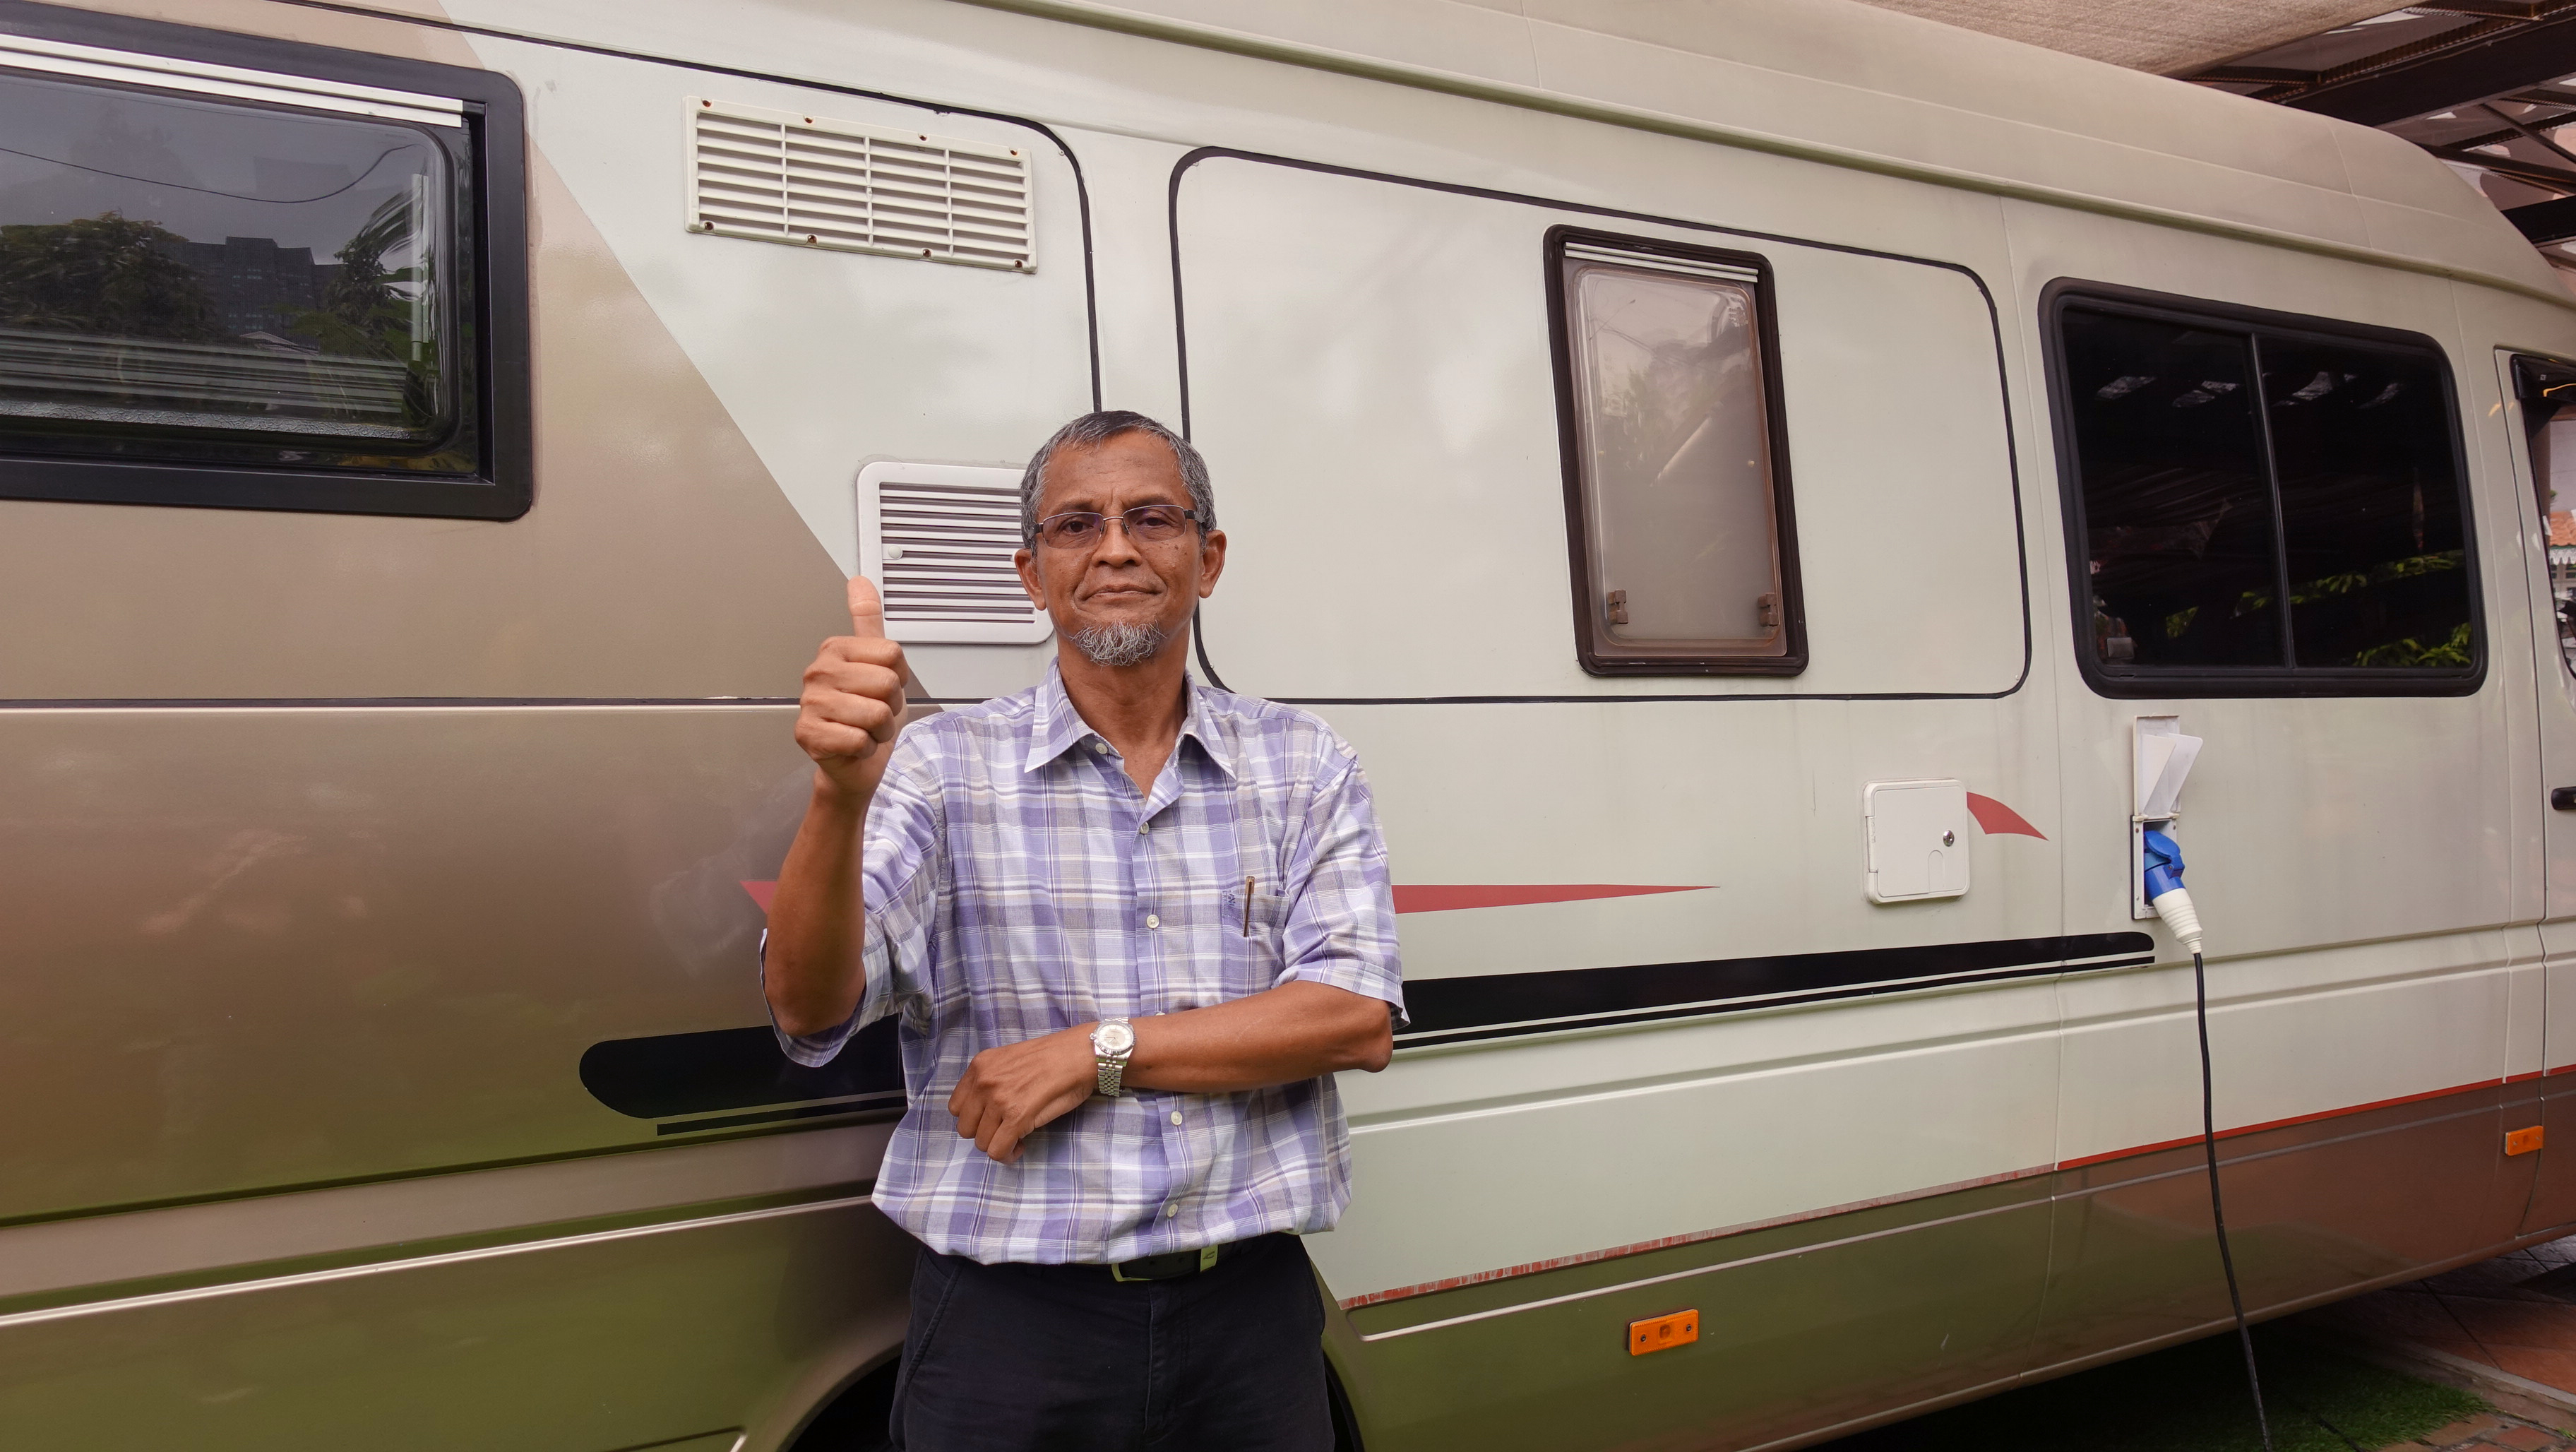 Mercedes Sprinter Camper Conversion Malaysia 24 Hour Travellers